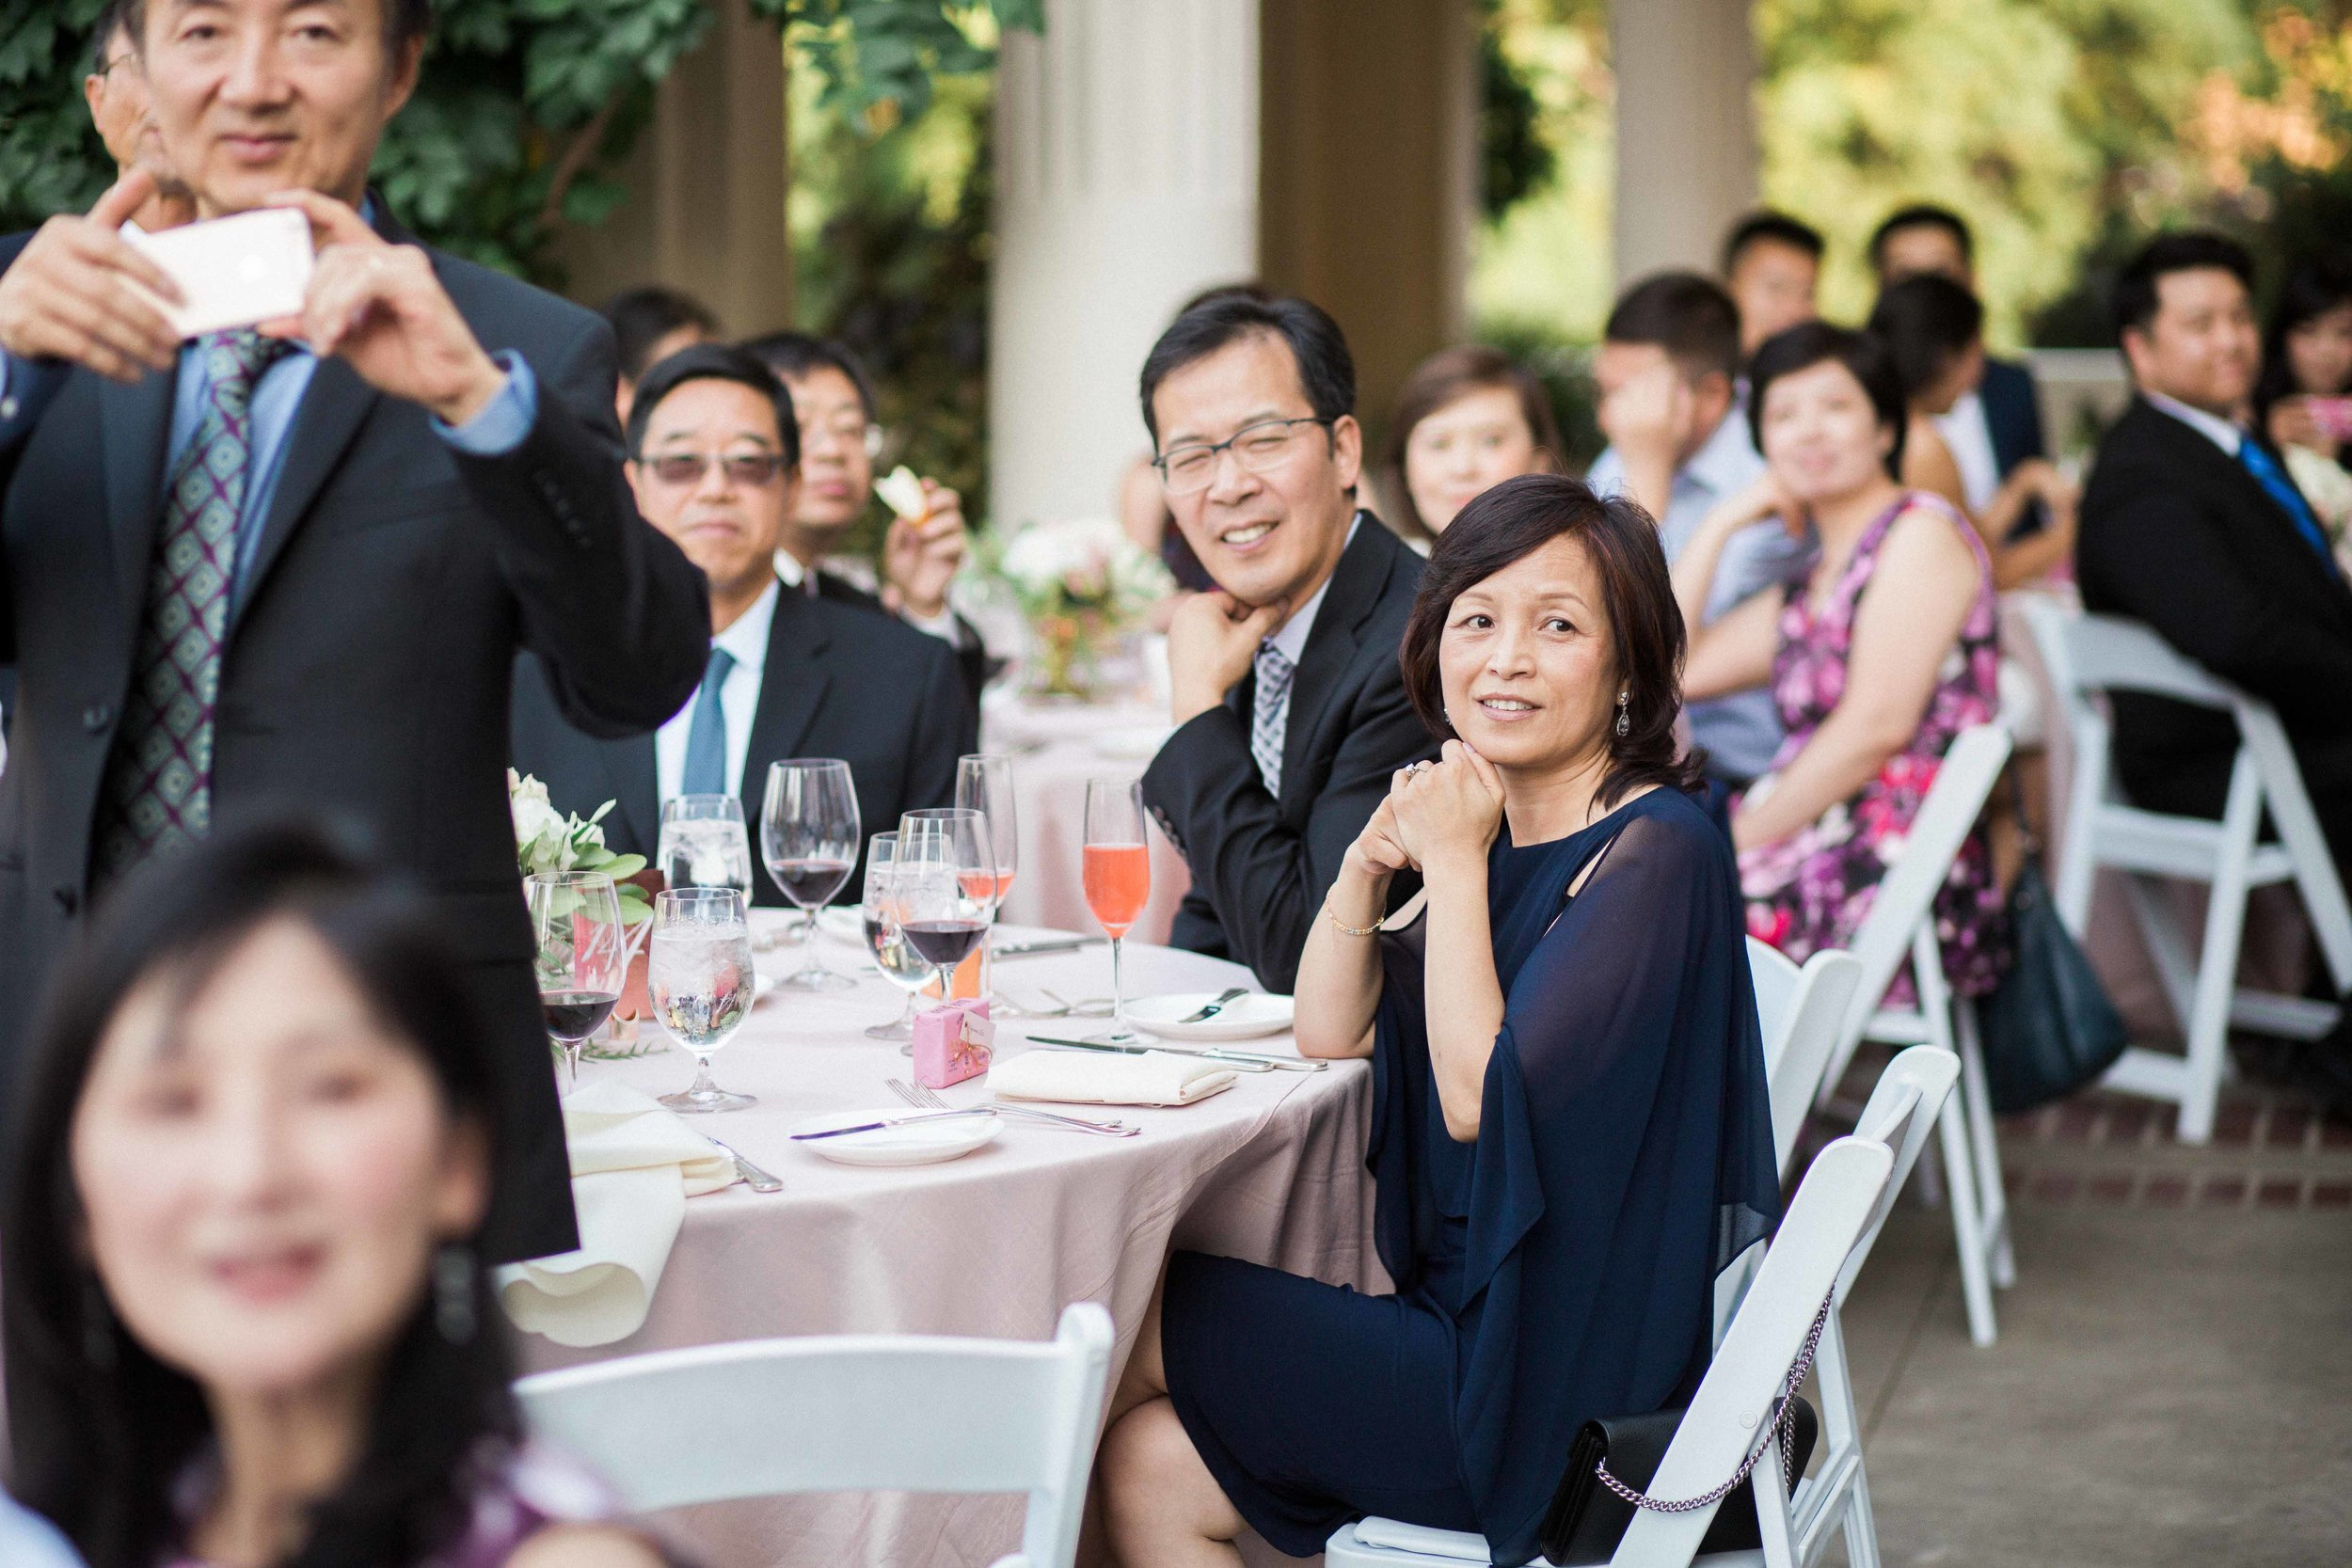 Villa_Montalvo_Wedding_Photographer_Videographer_San_Francisco164.jpg